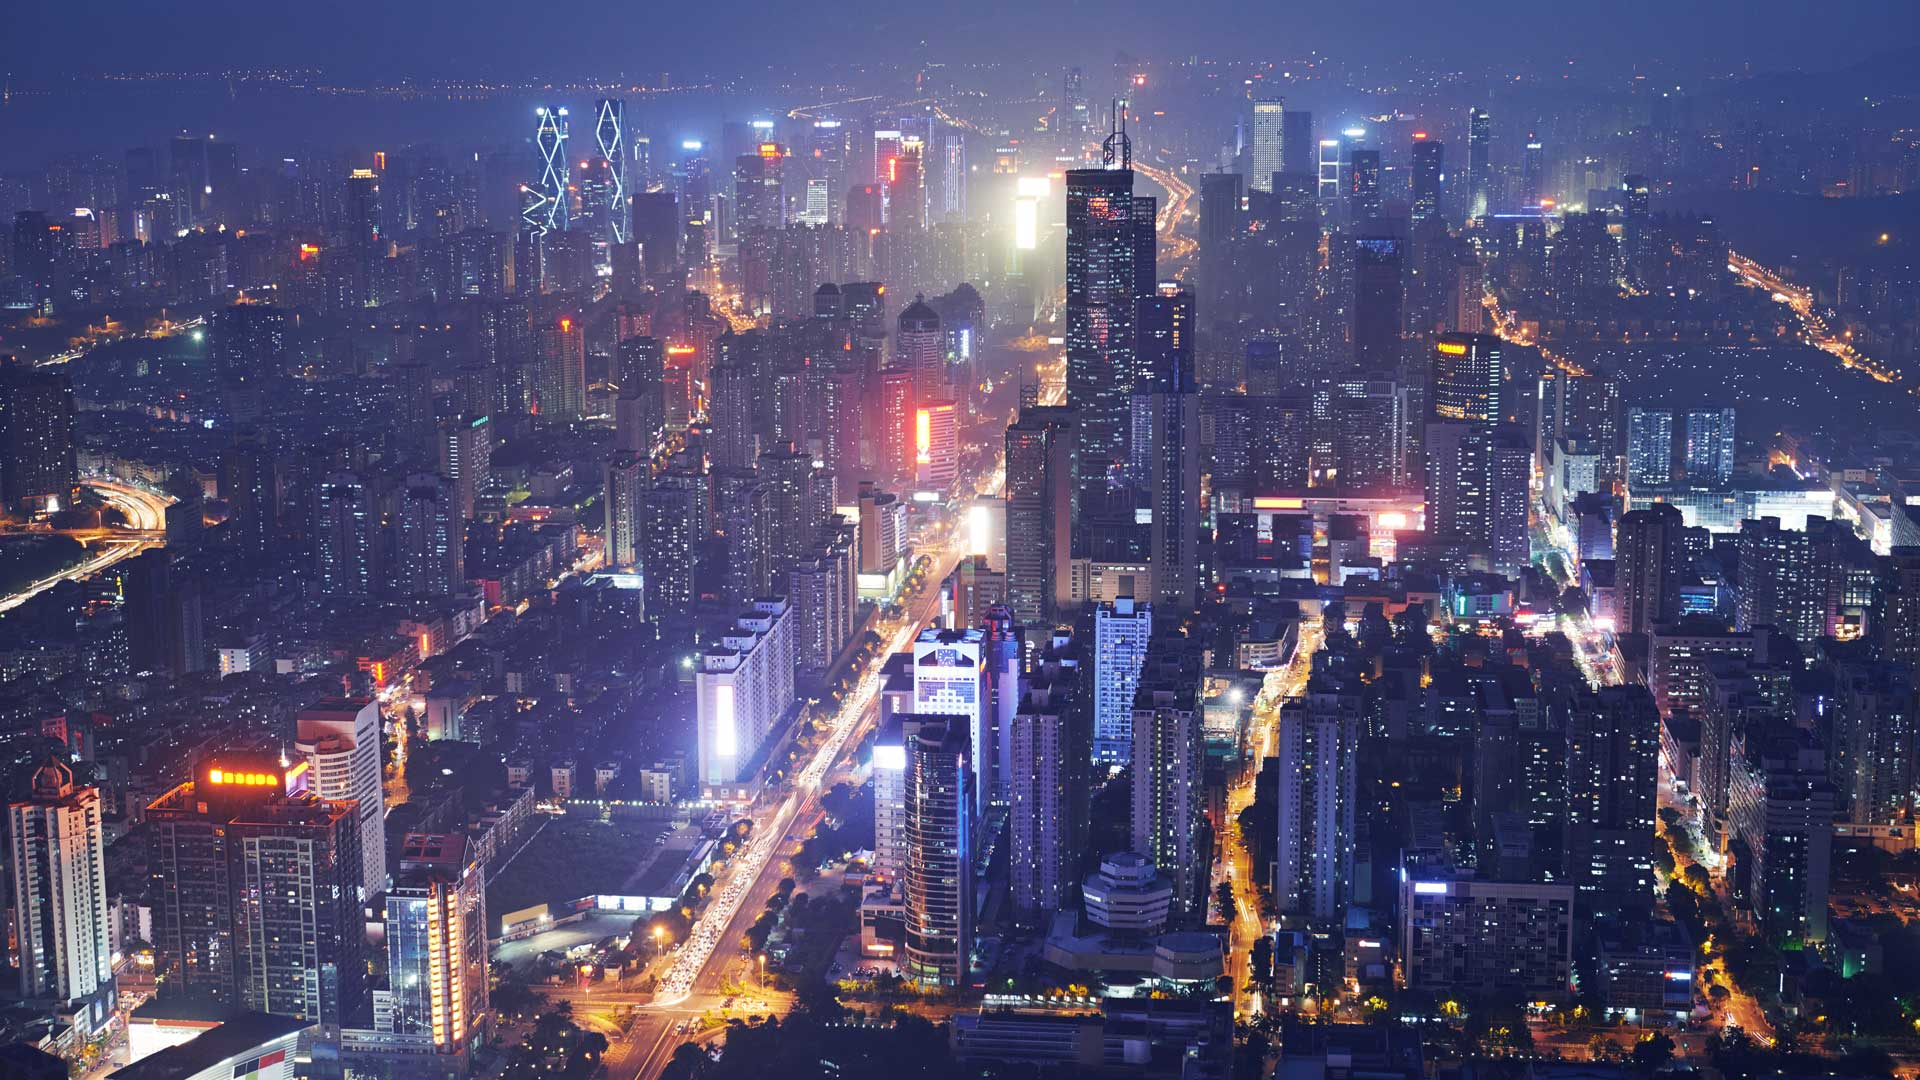 The lit up cityscape of Shenzhen